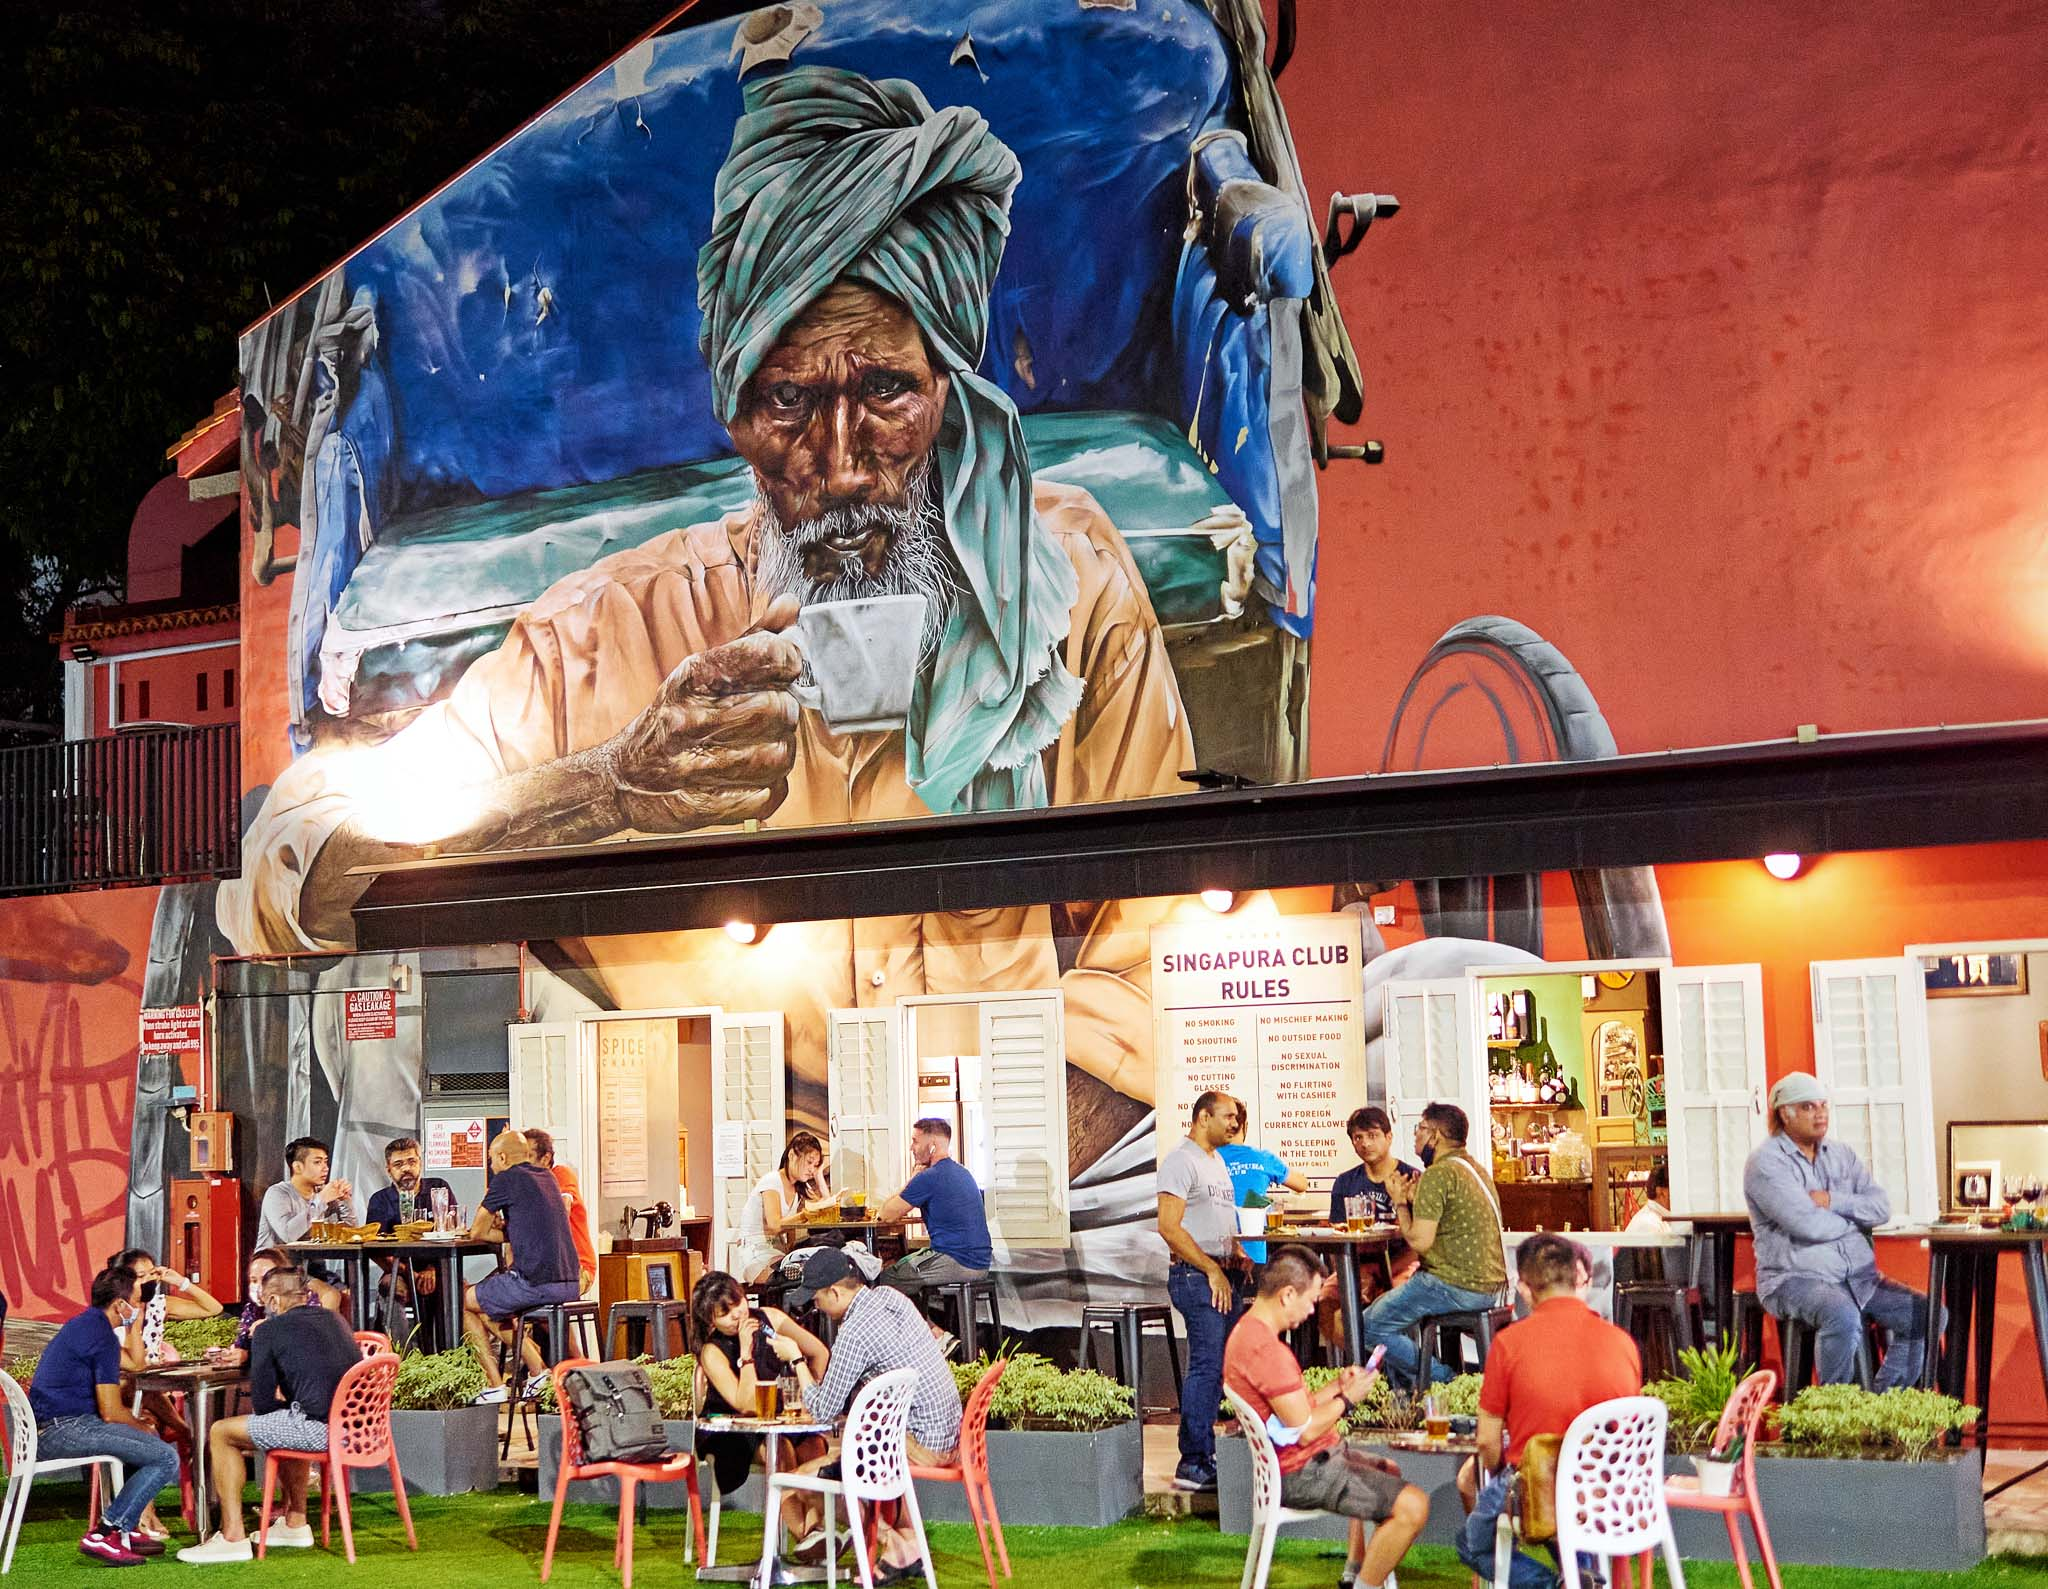 Mural of a rickshaw man in the background while patrons dining in a Bistro, Clive Street, Little India, Singapore